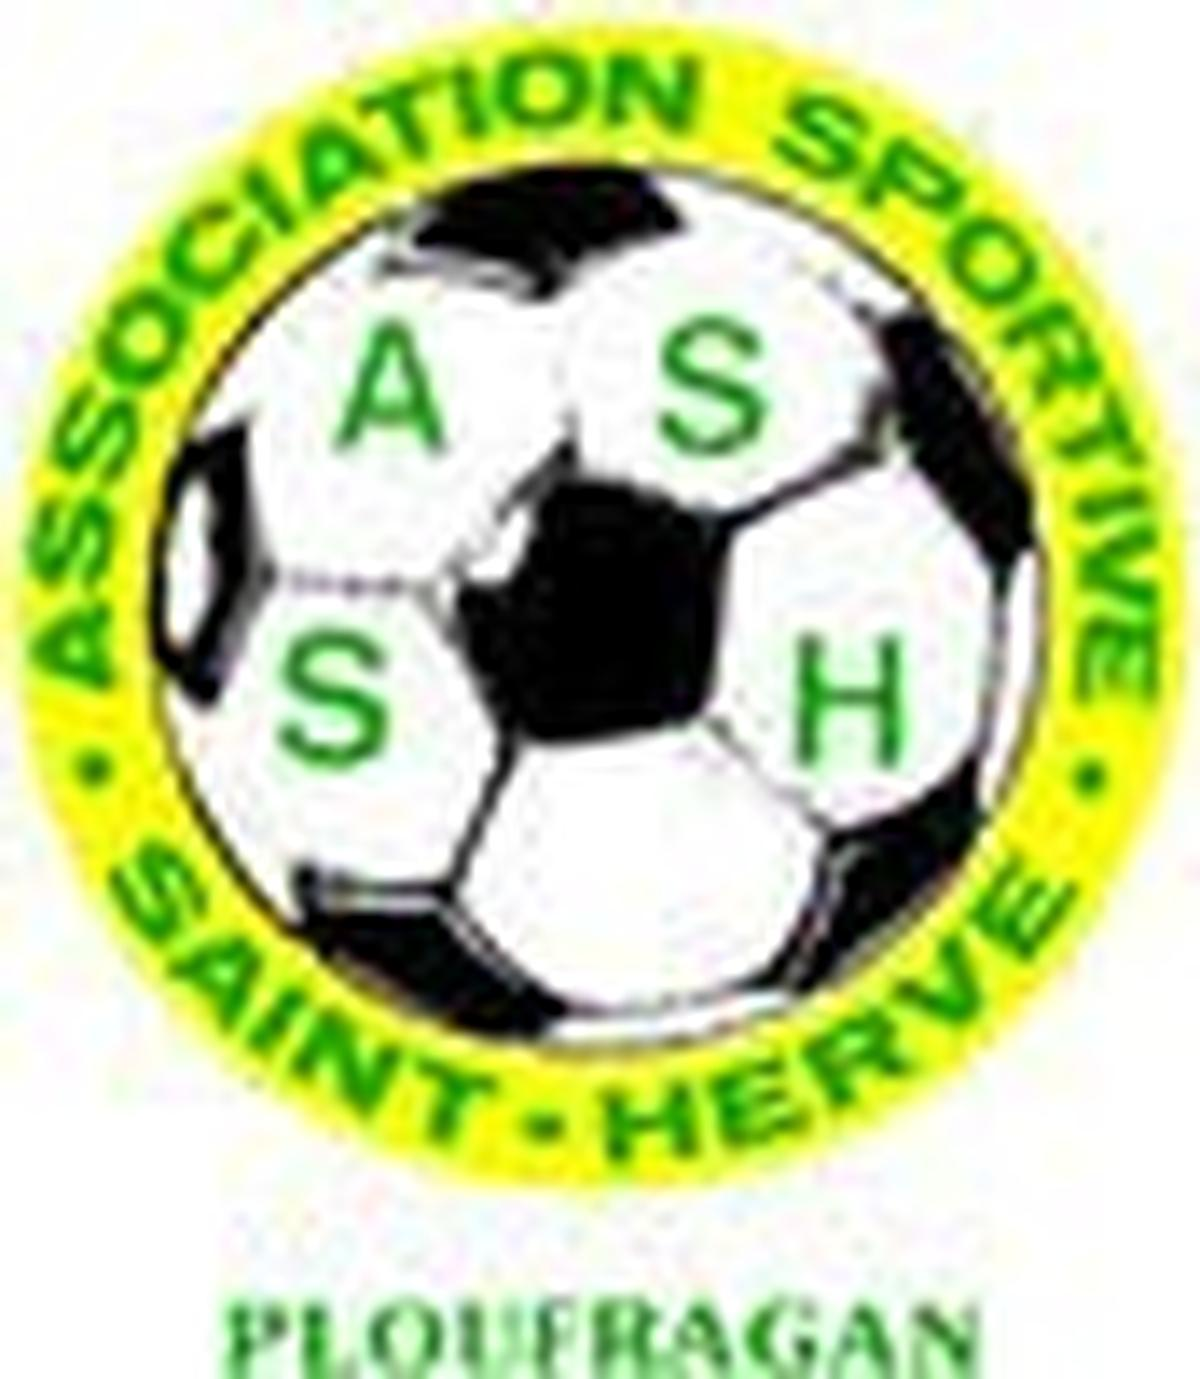 logo du club AS - SAINT-HERVE